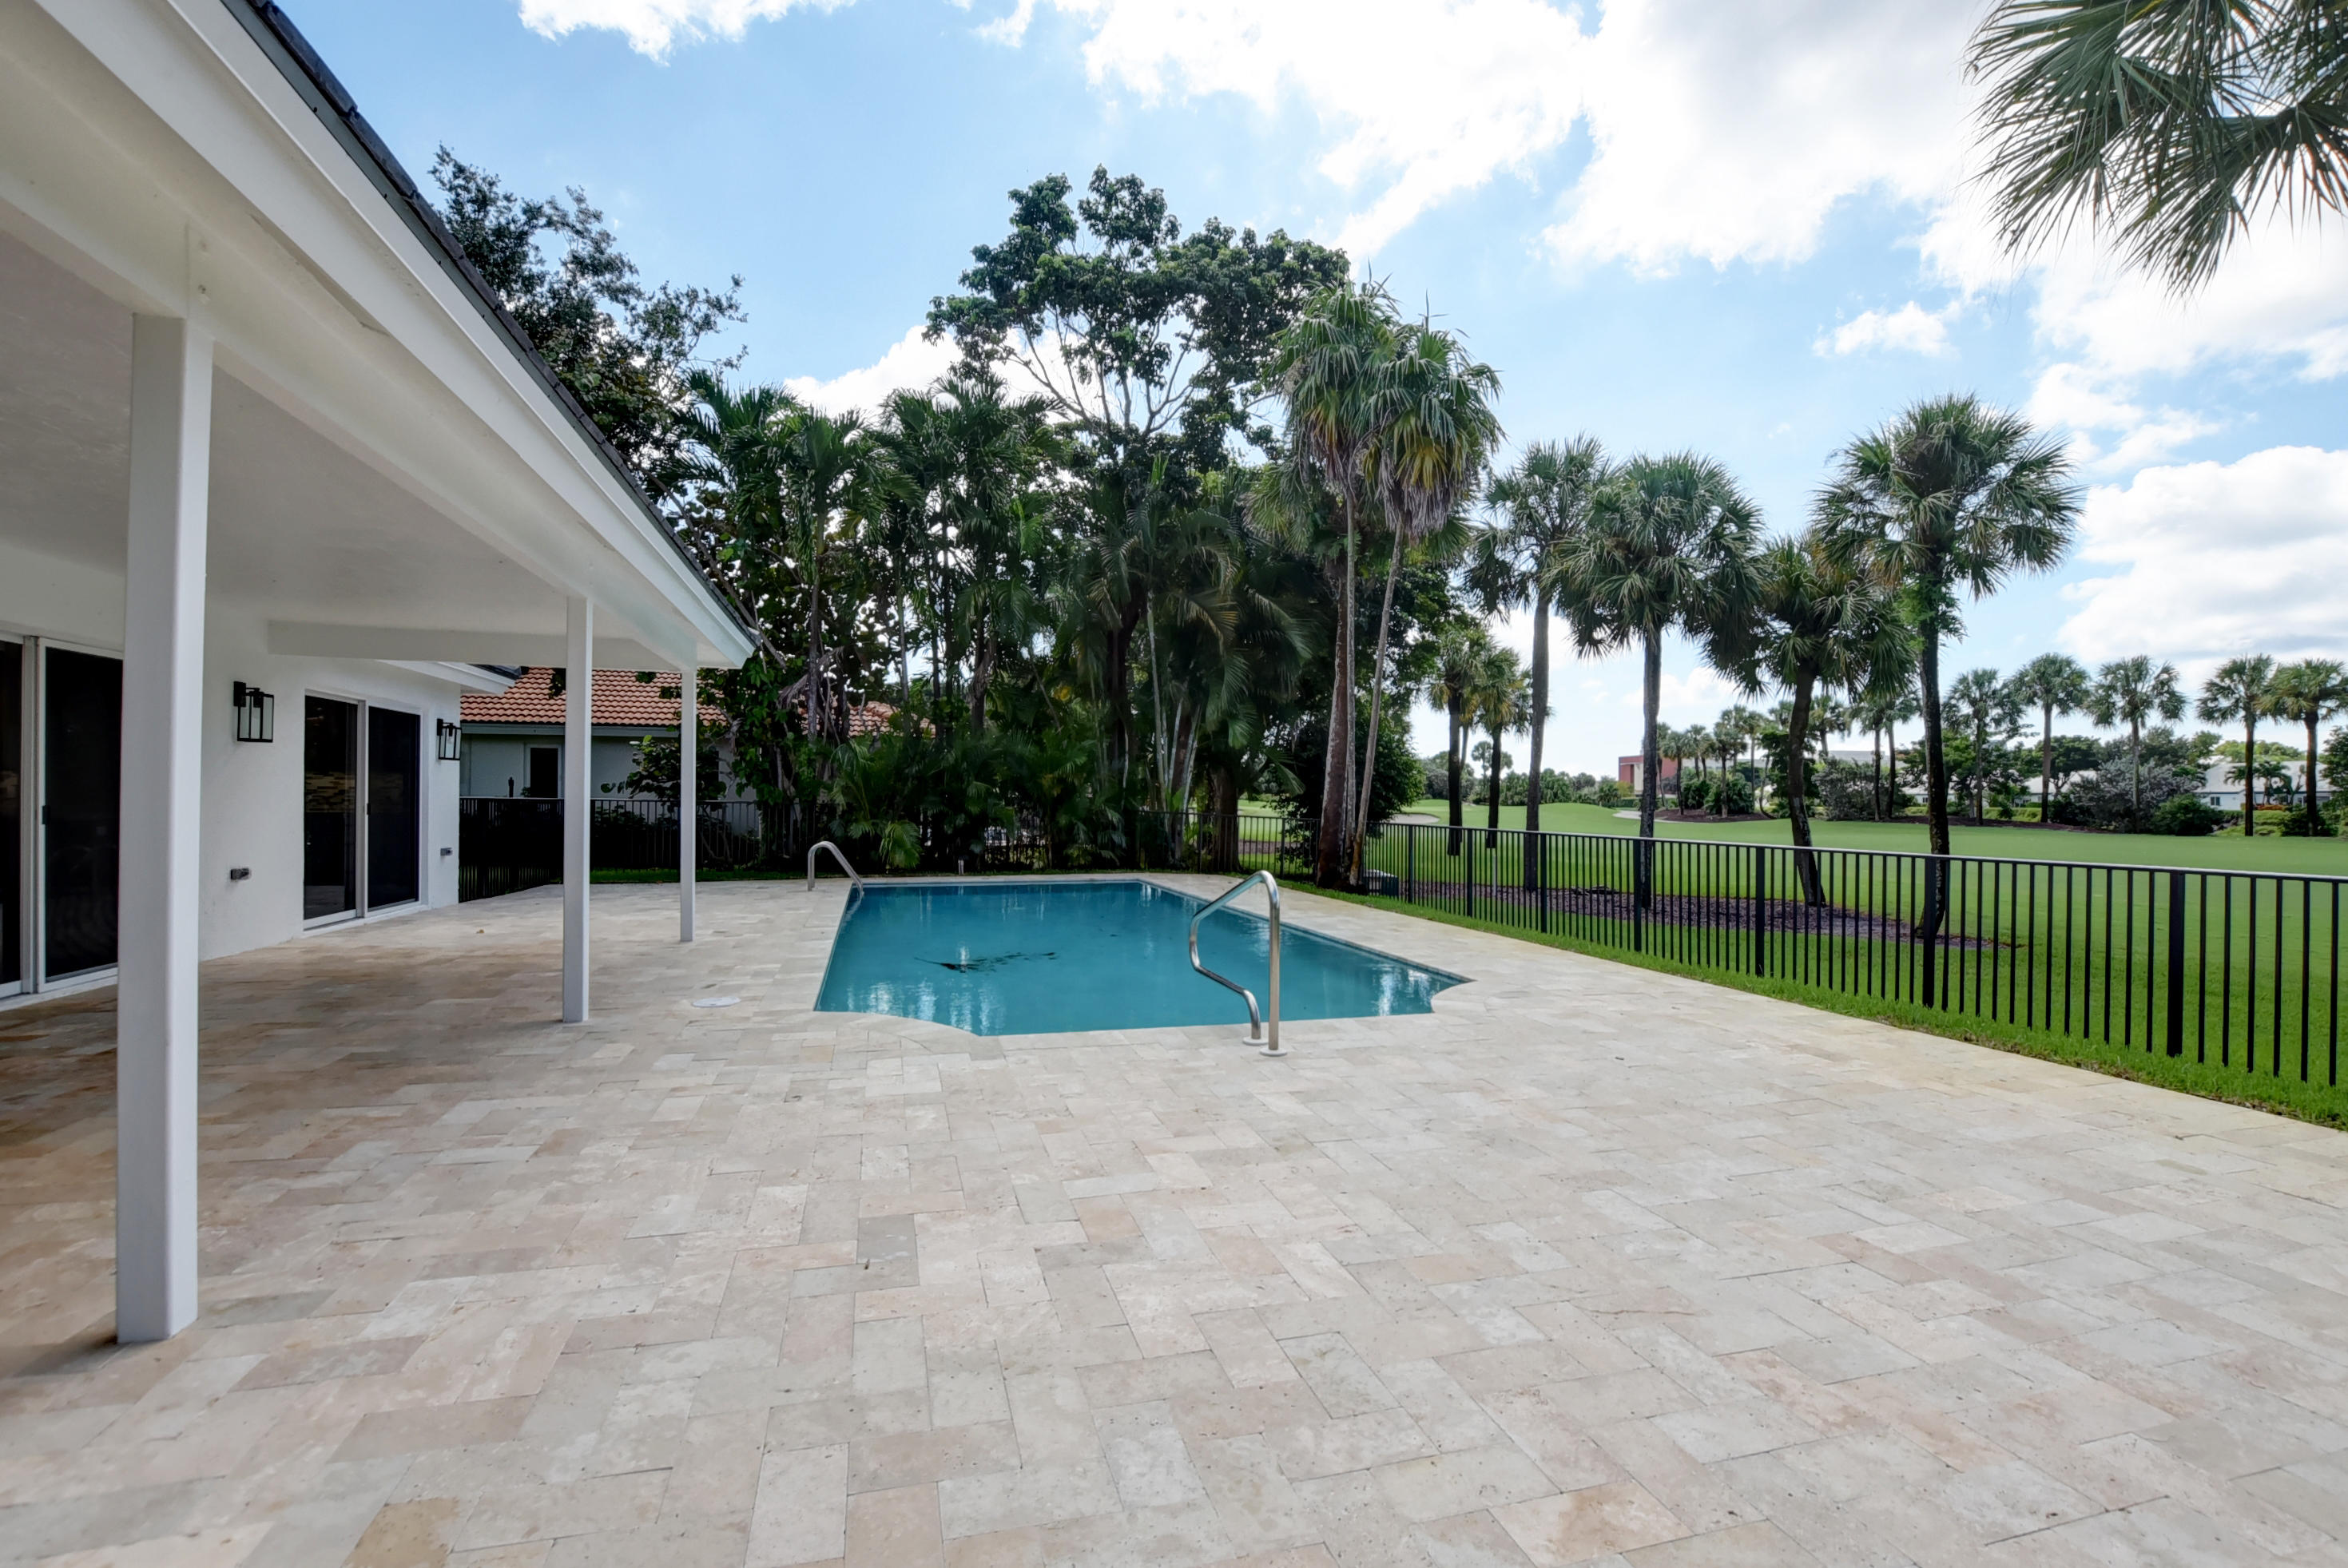 DEL-AIRE GOLF CLUB FIRST ADDITION LOT 25 BLK R